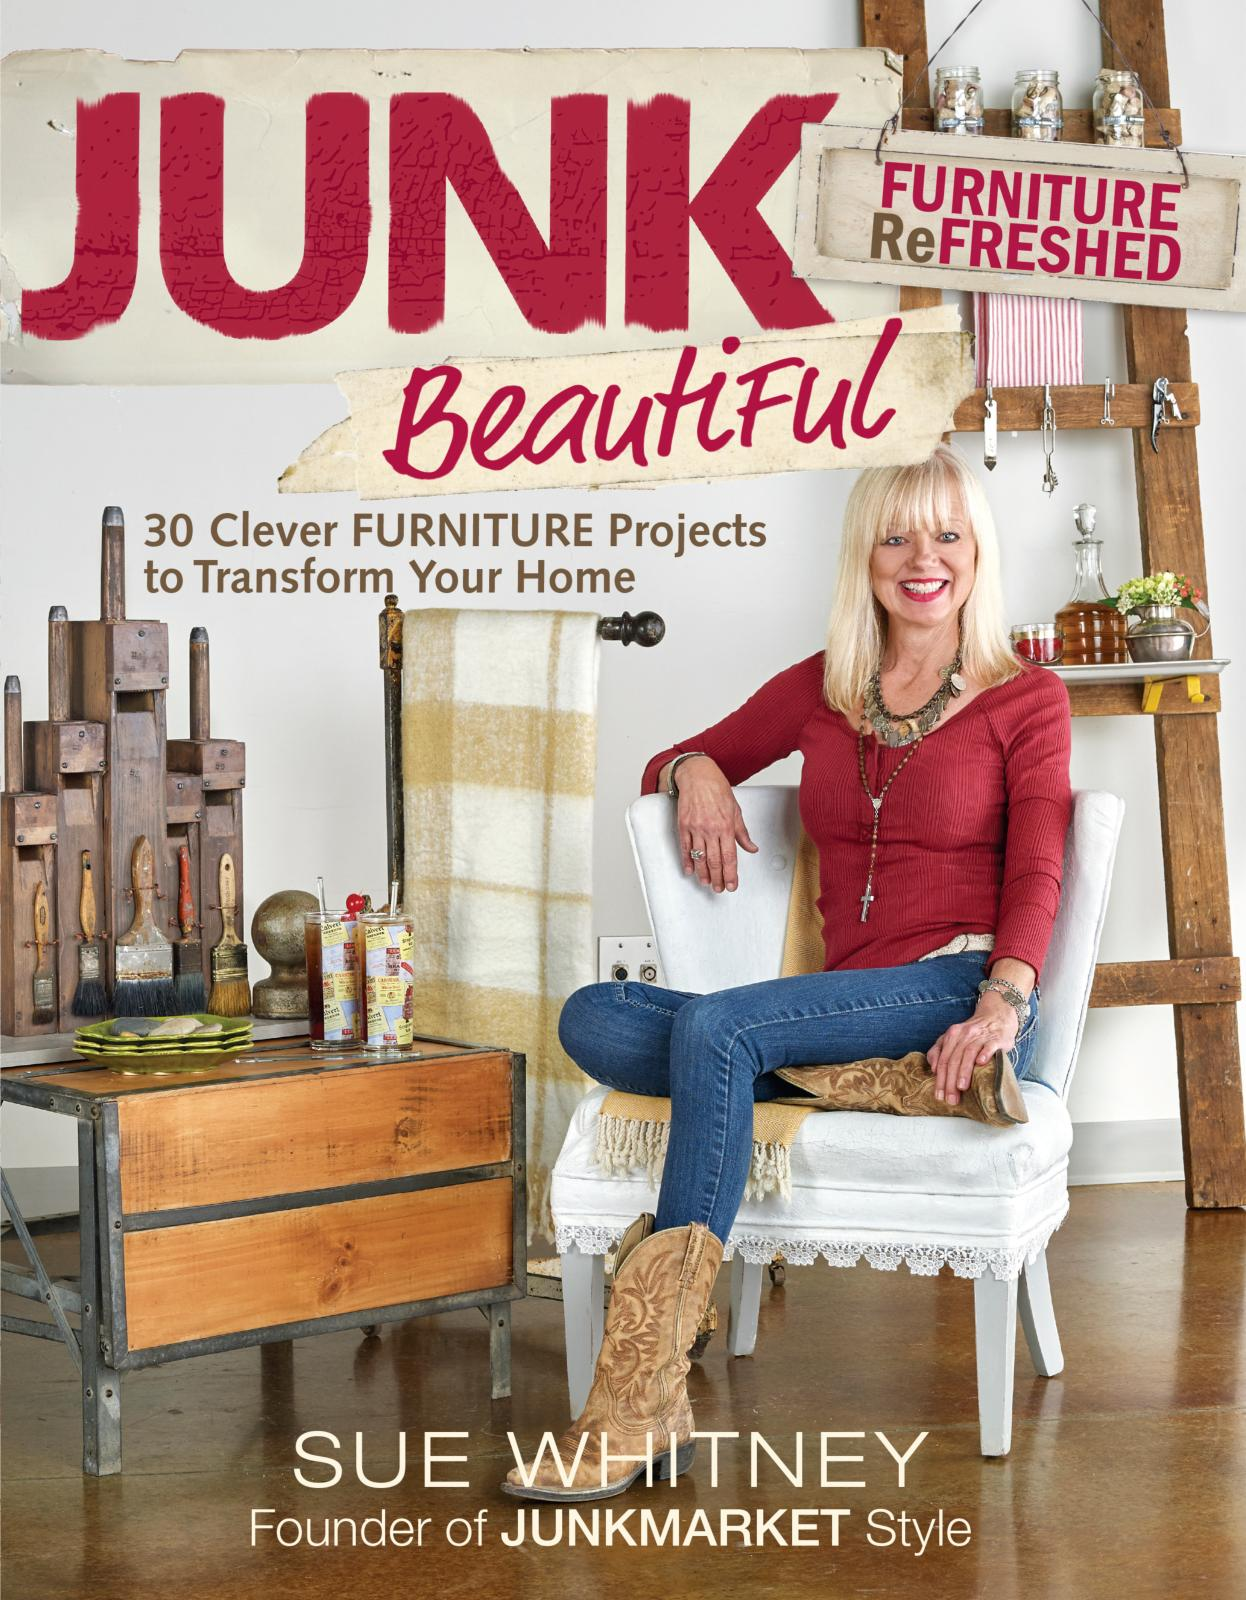 071618 Junk Beautiful Furniture Refreshed